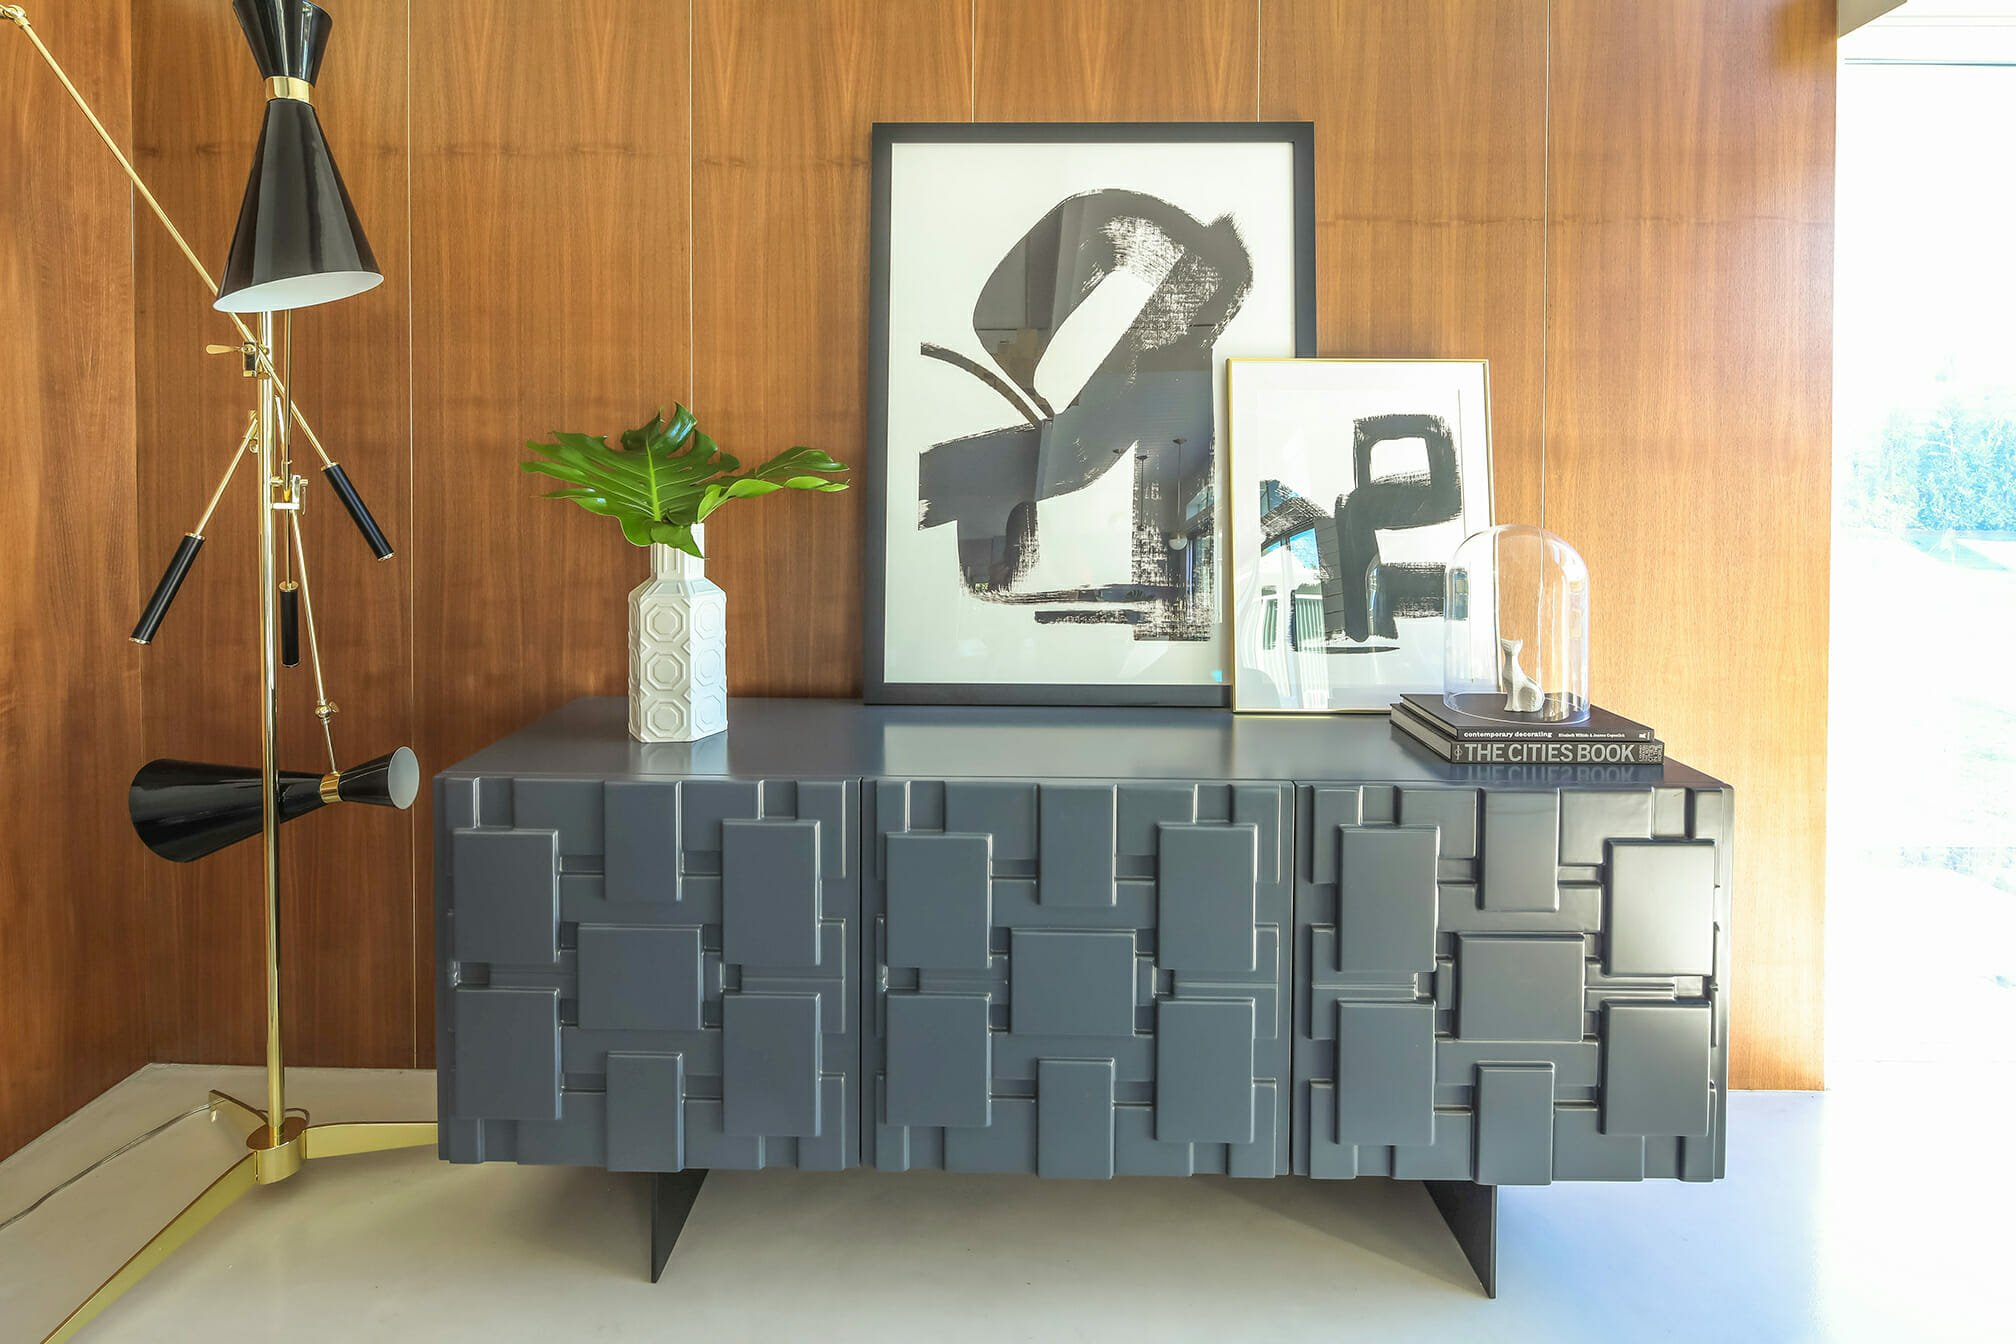 Mid Century Interior Design Styling by Michelle B.